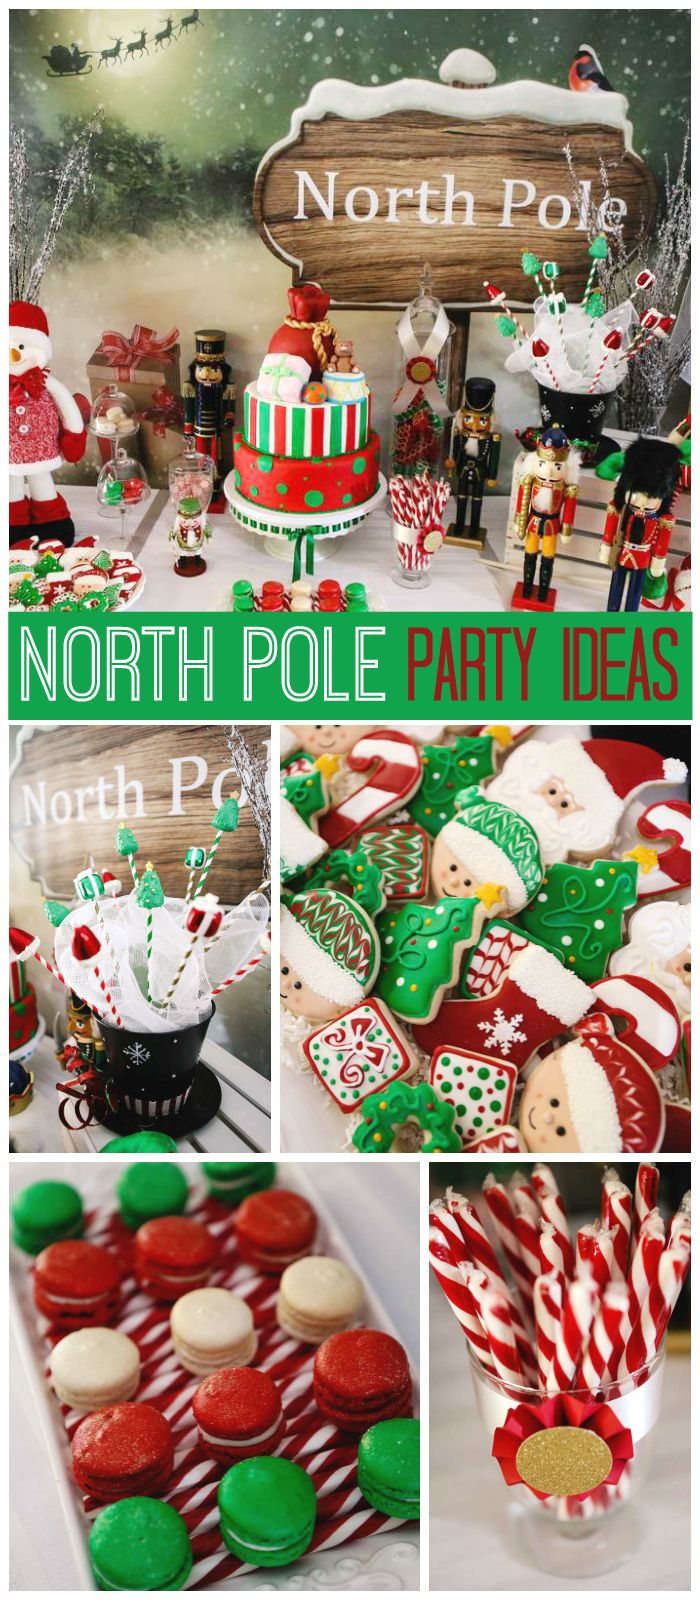 A Green And Red North Pole Christmas Party With Santas Workshop Theme Amazing Treats